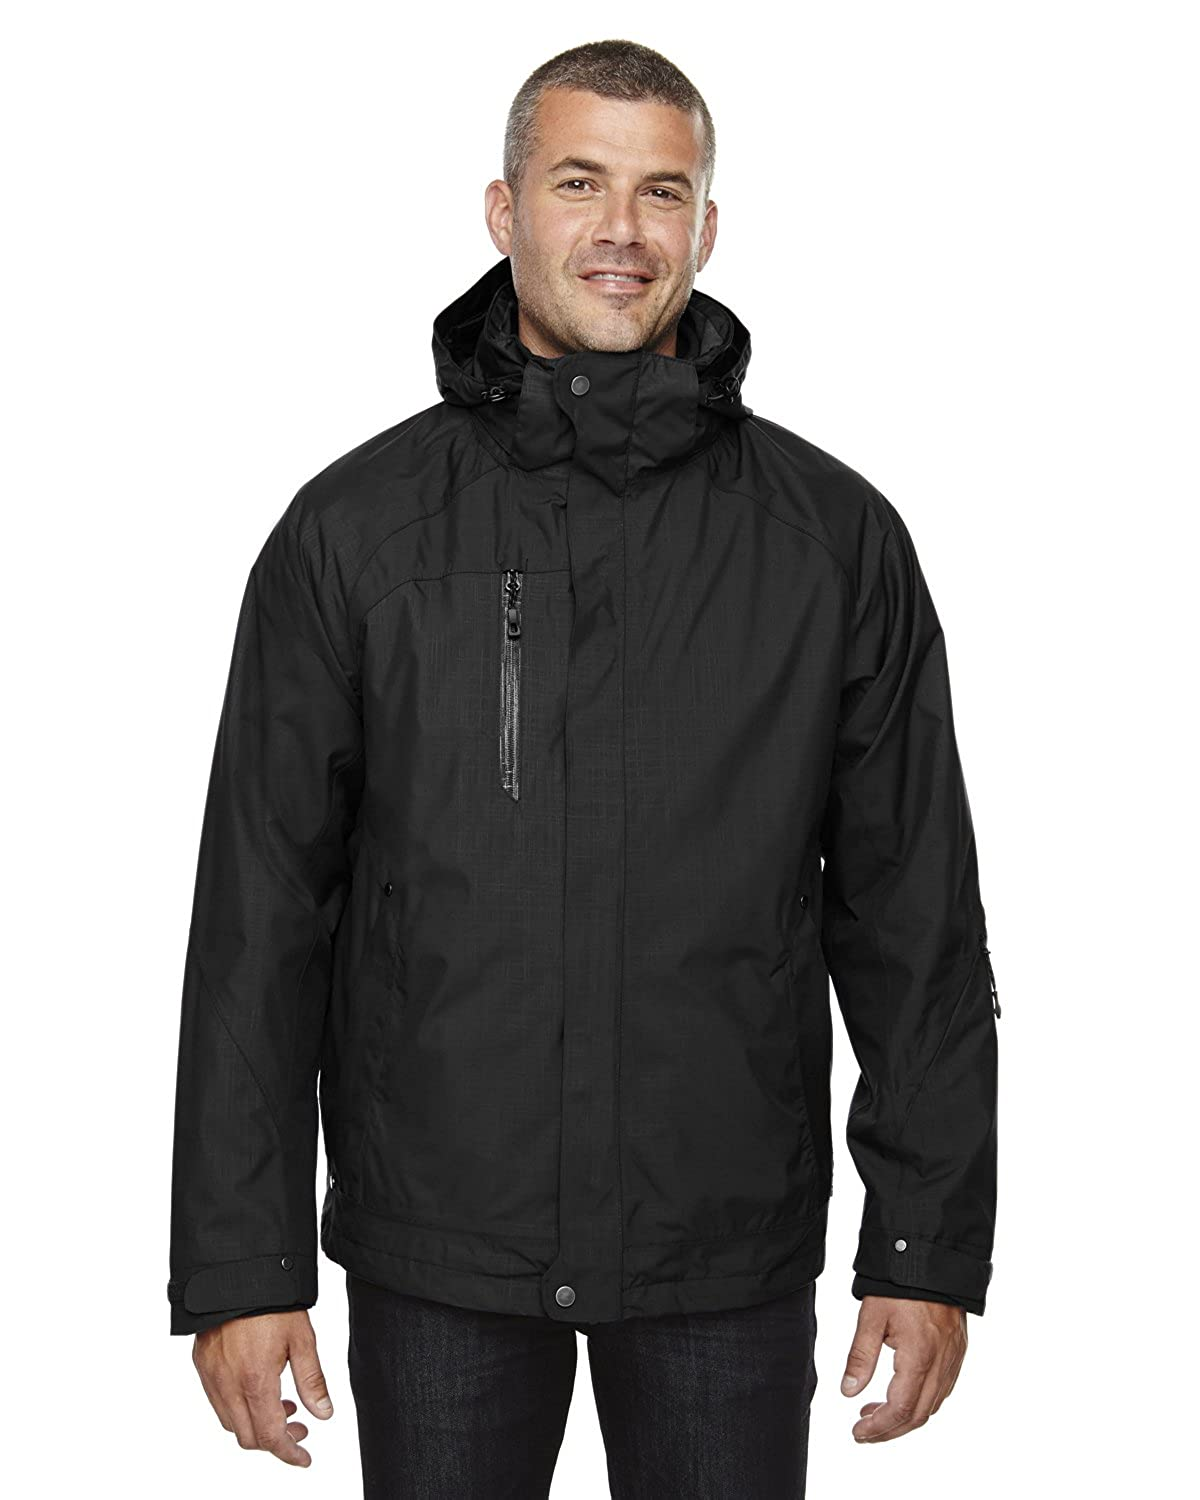 Ash City – North End 88178 Men 's Caprice 3 - in - 1 Jacket withソフトシェルライナー B00A2PY62G ブラック703 5L